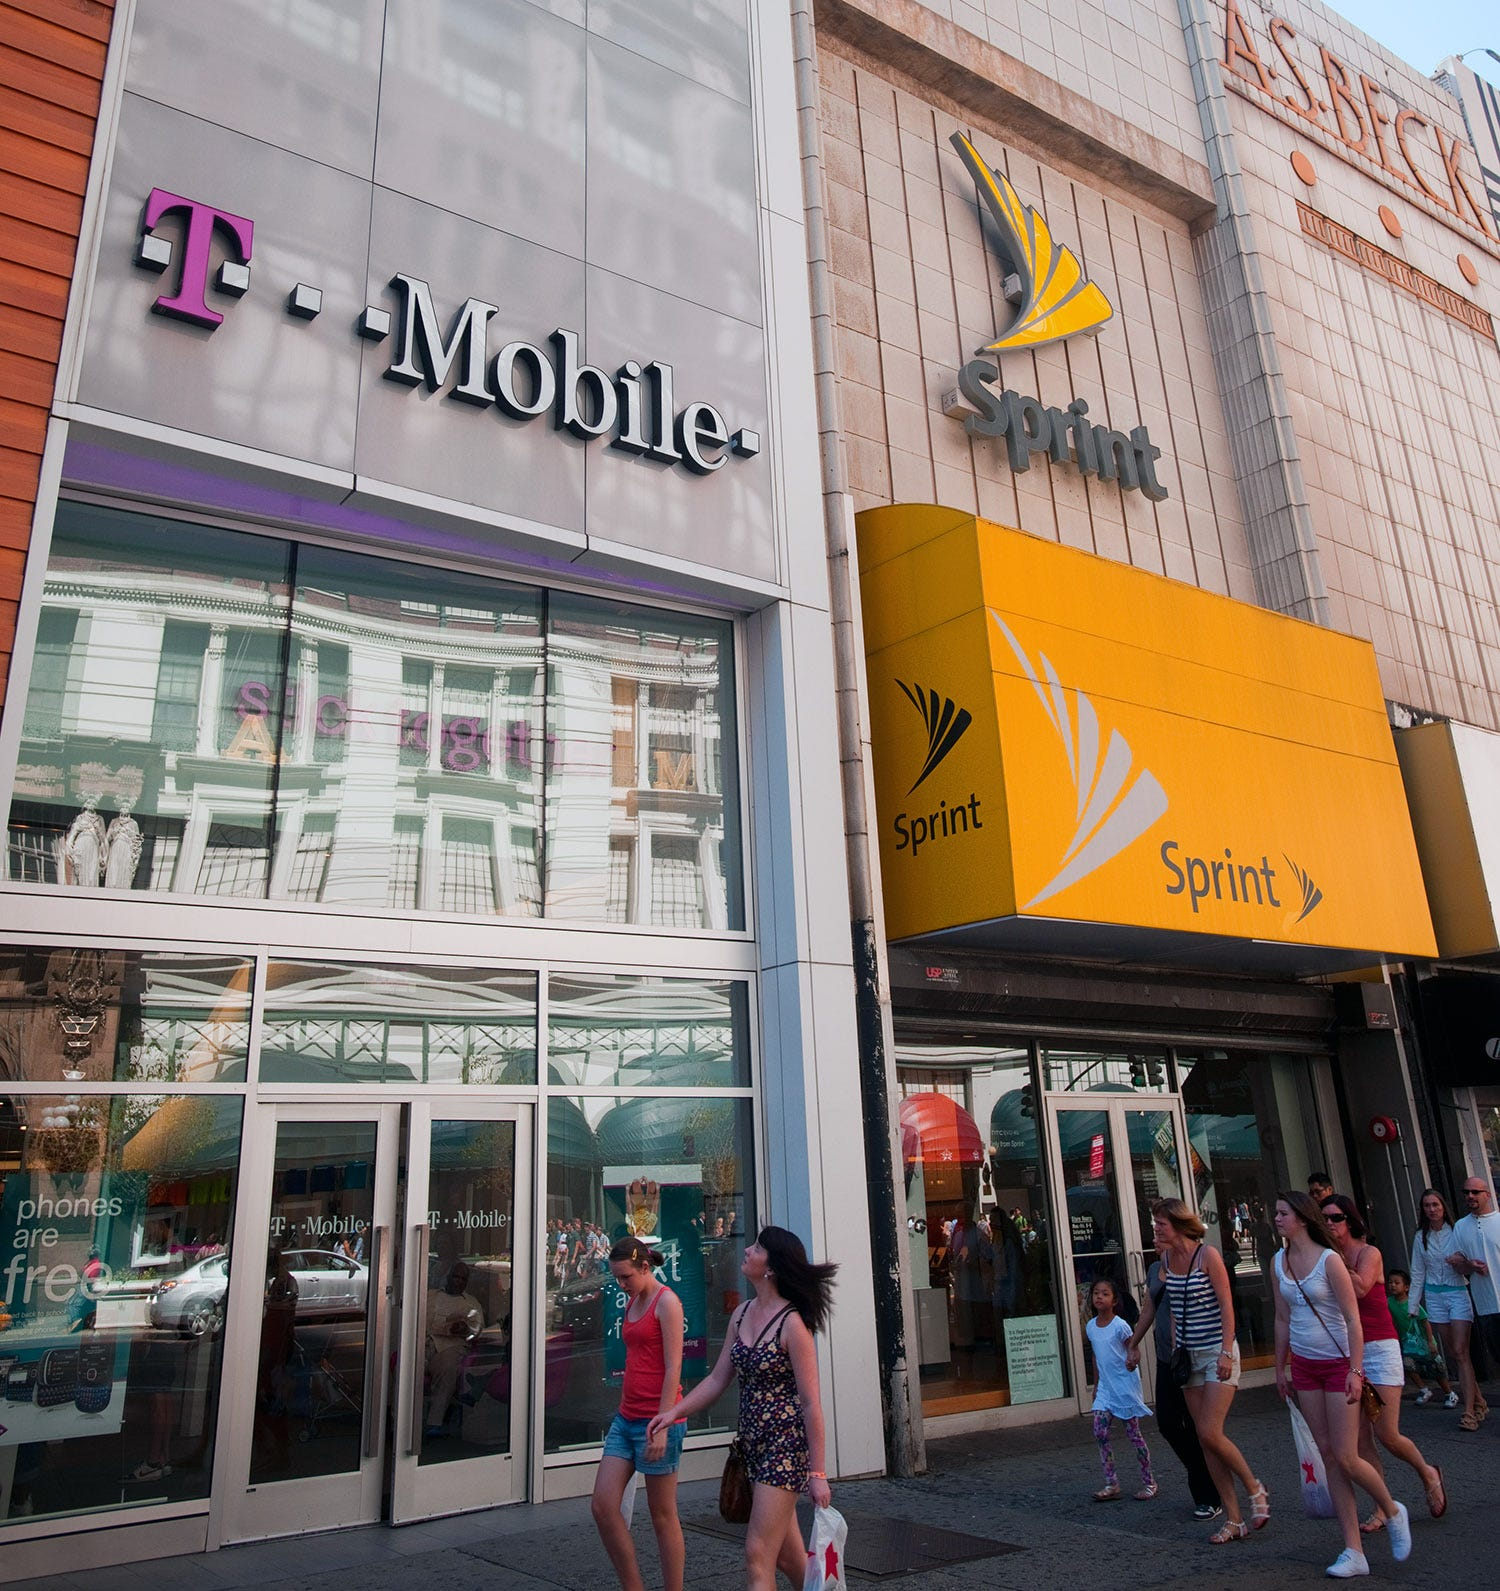 T-Mobile and Sprint stores together.